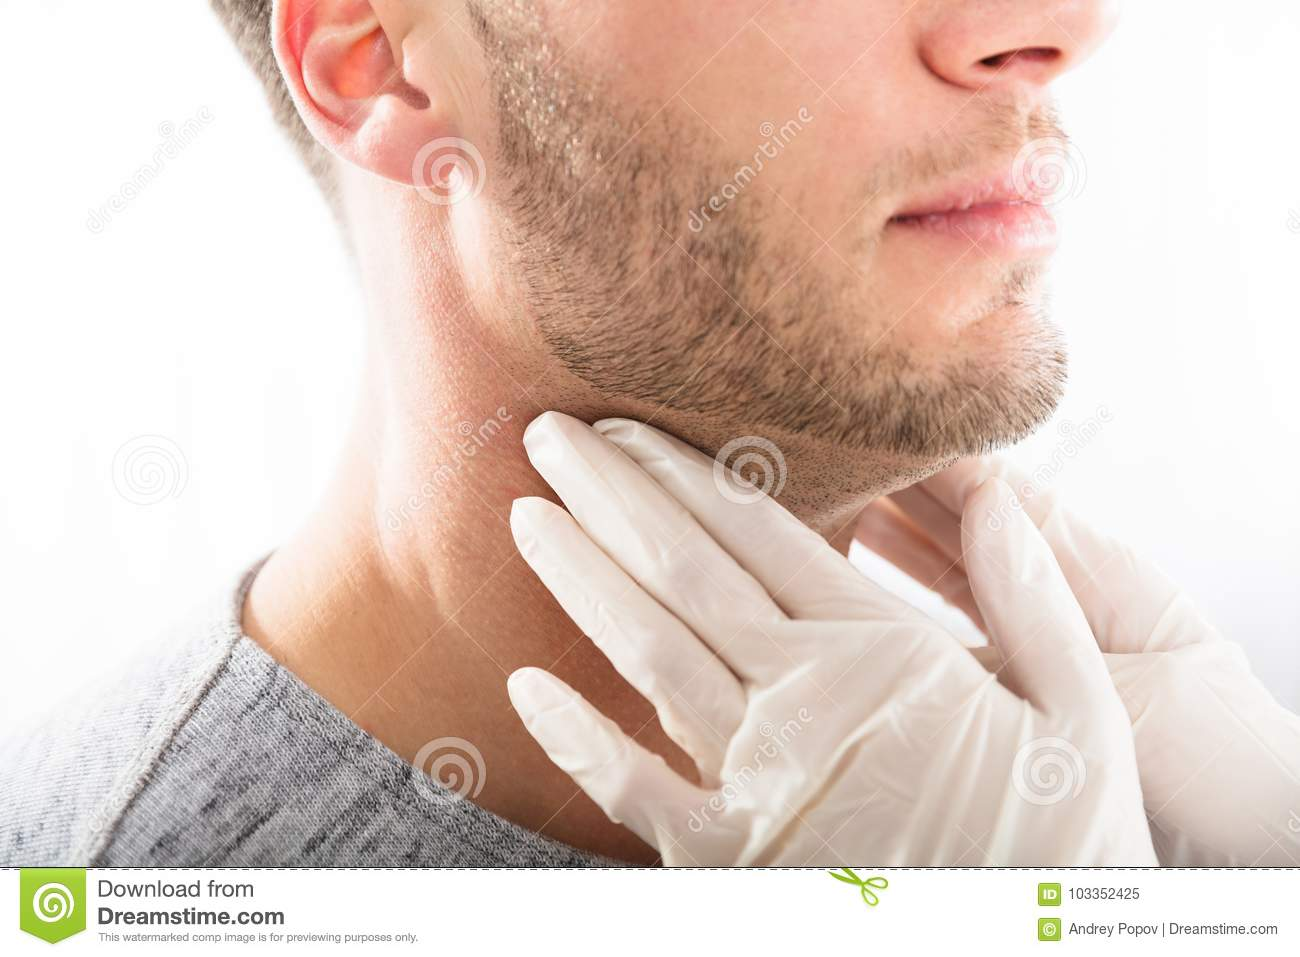 What are the functions of the thyroid gland in men